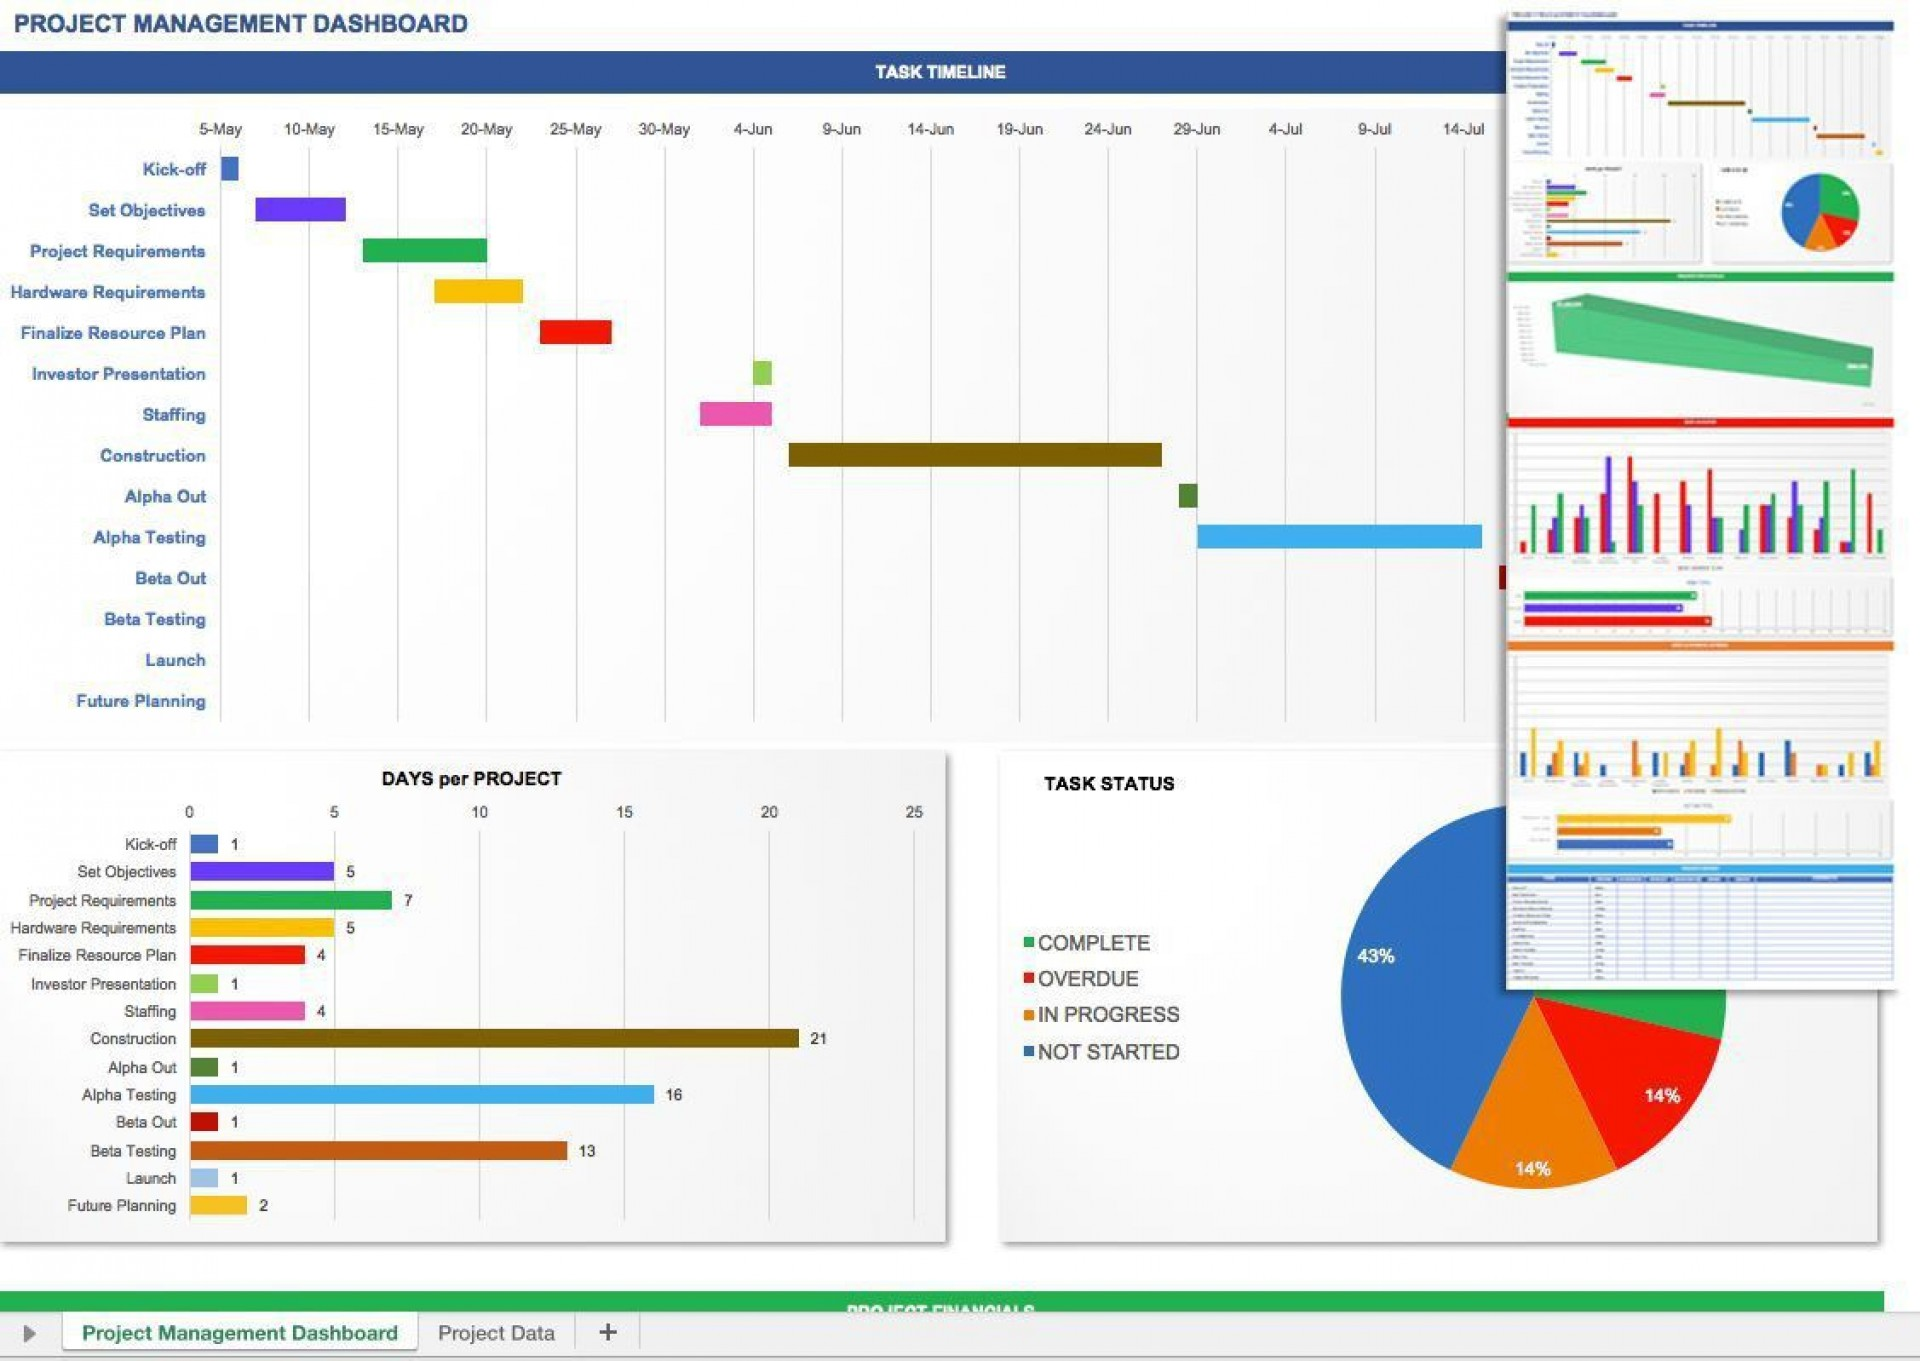 000 Frightening Project Management Dashboard Excel Template Free Design  Simple Multiple1920